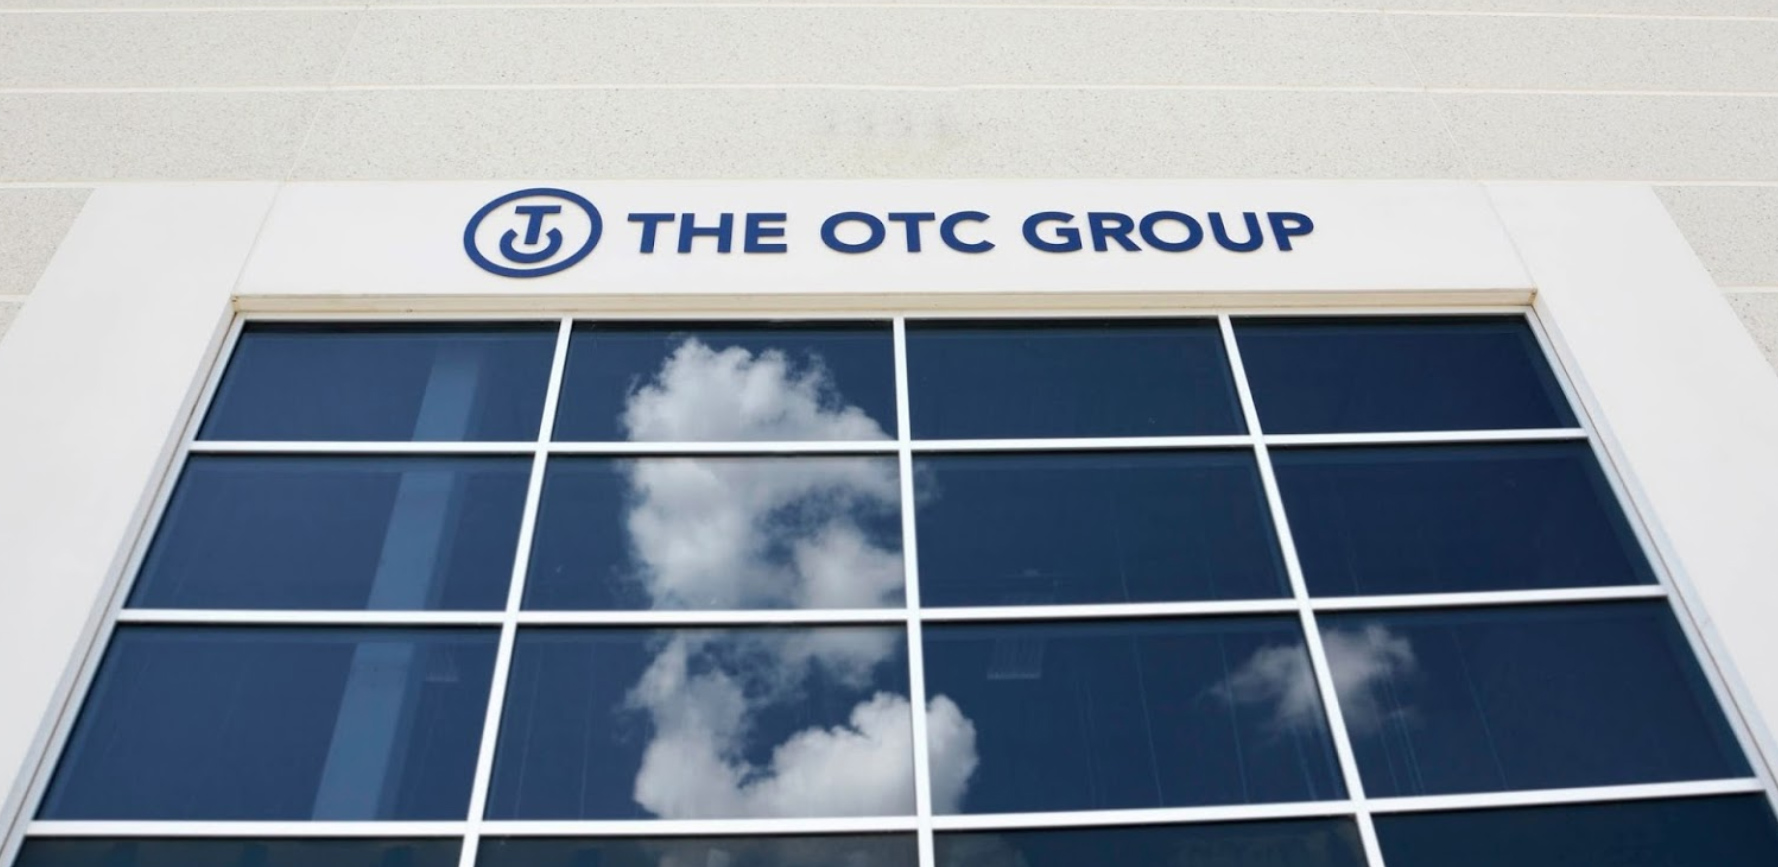 The OTC Group